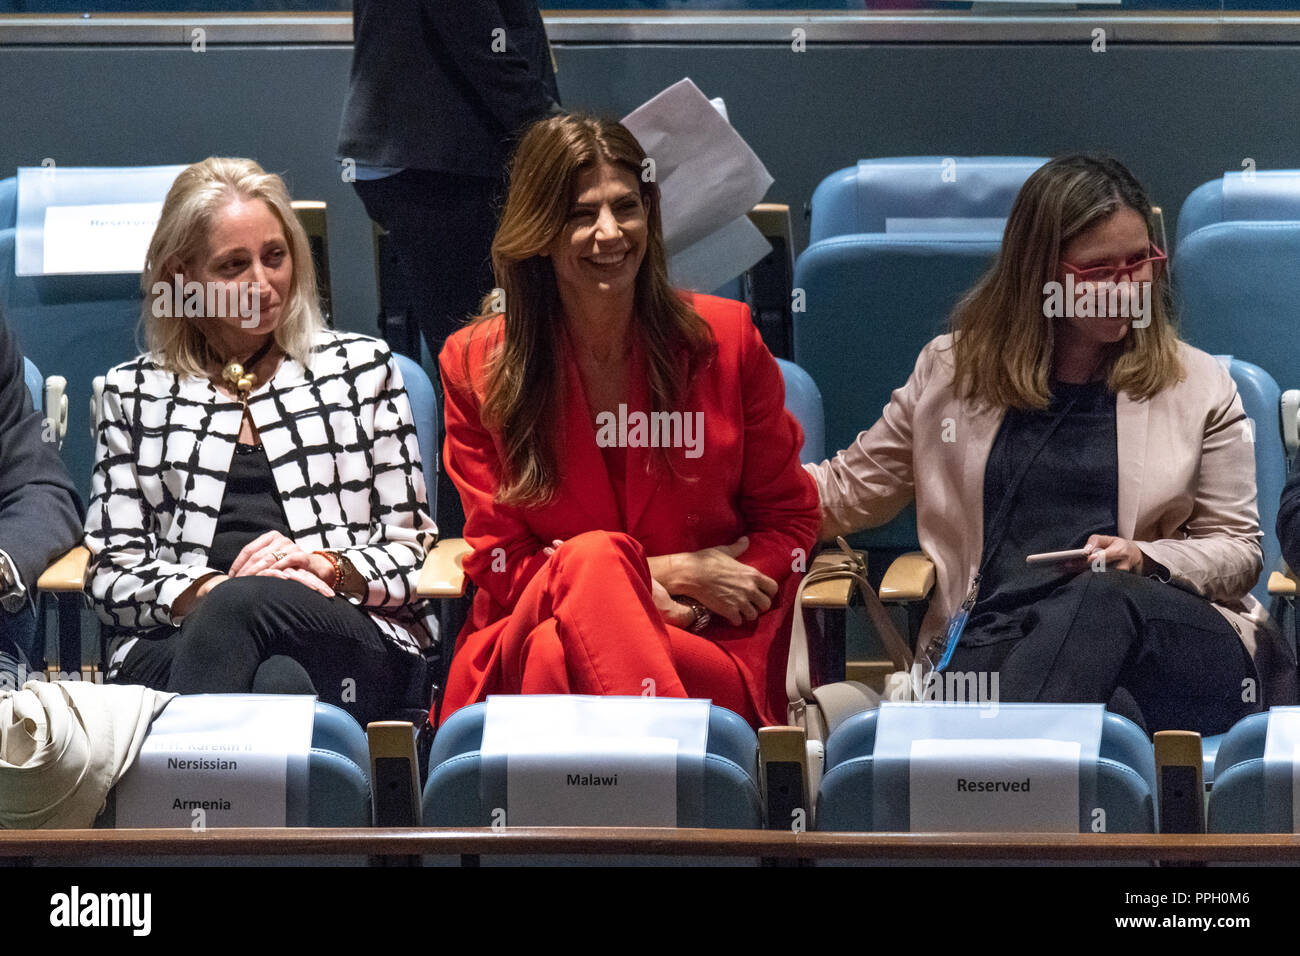 New York, USA, 24 September 2018.  Argentine First Lady Juliana Awada (wearing red) waits at a sidel seating while her husband Argentine President Mauricio Macri addresses the United Nations General Assembly.  Photo by Enrique Shore Credit: Enrique Shore/Alamy Live News Stock Photo